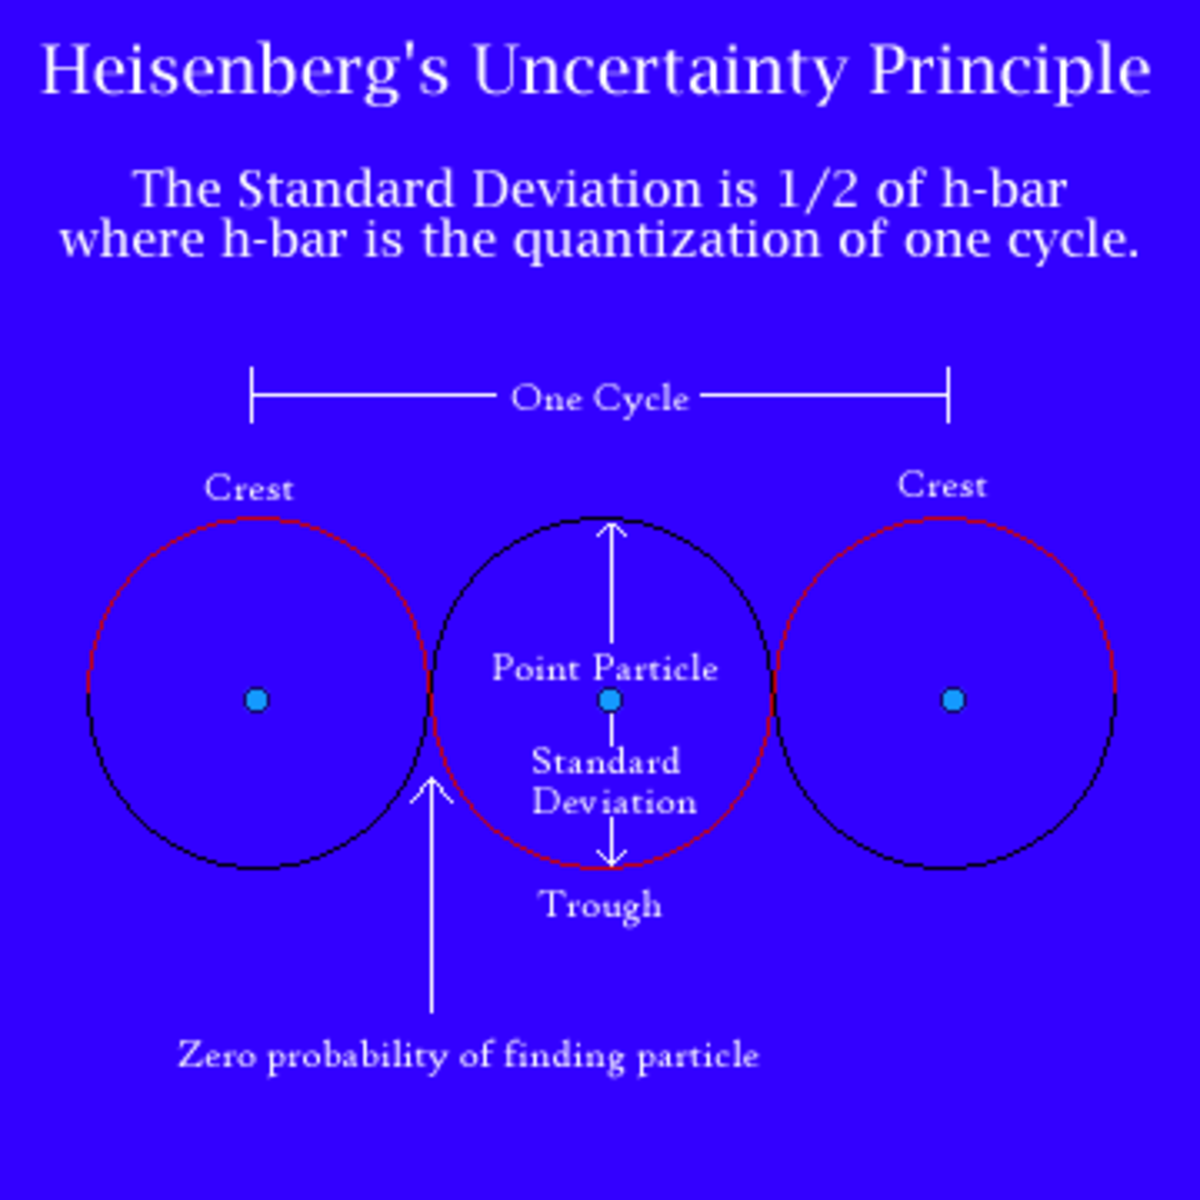 A graphical representation of Heisenberg's Uncertainty Principle.